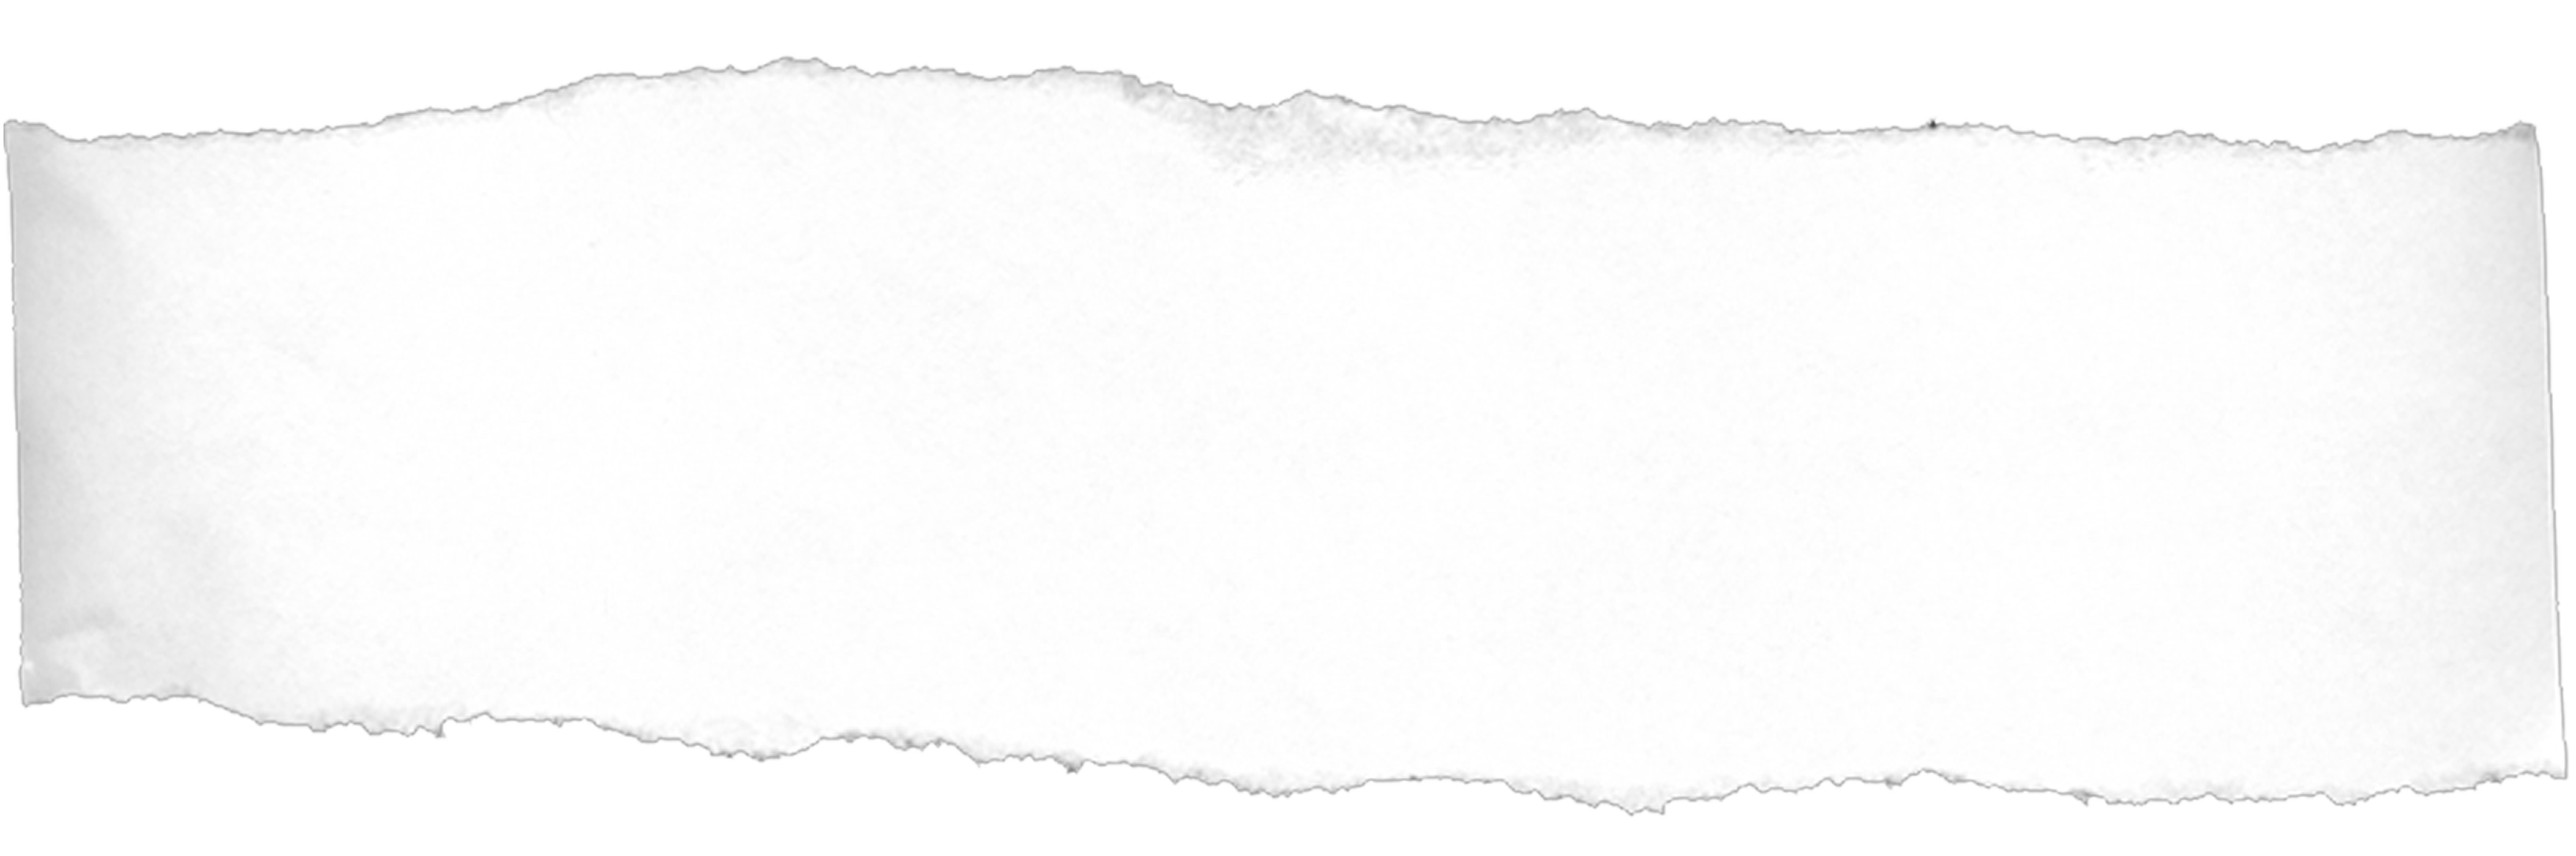 Free Torn Piece Of Paper Png, Download Free Clip Art, Free.